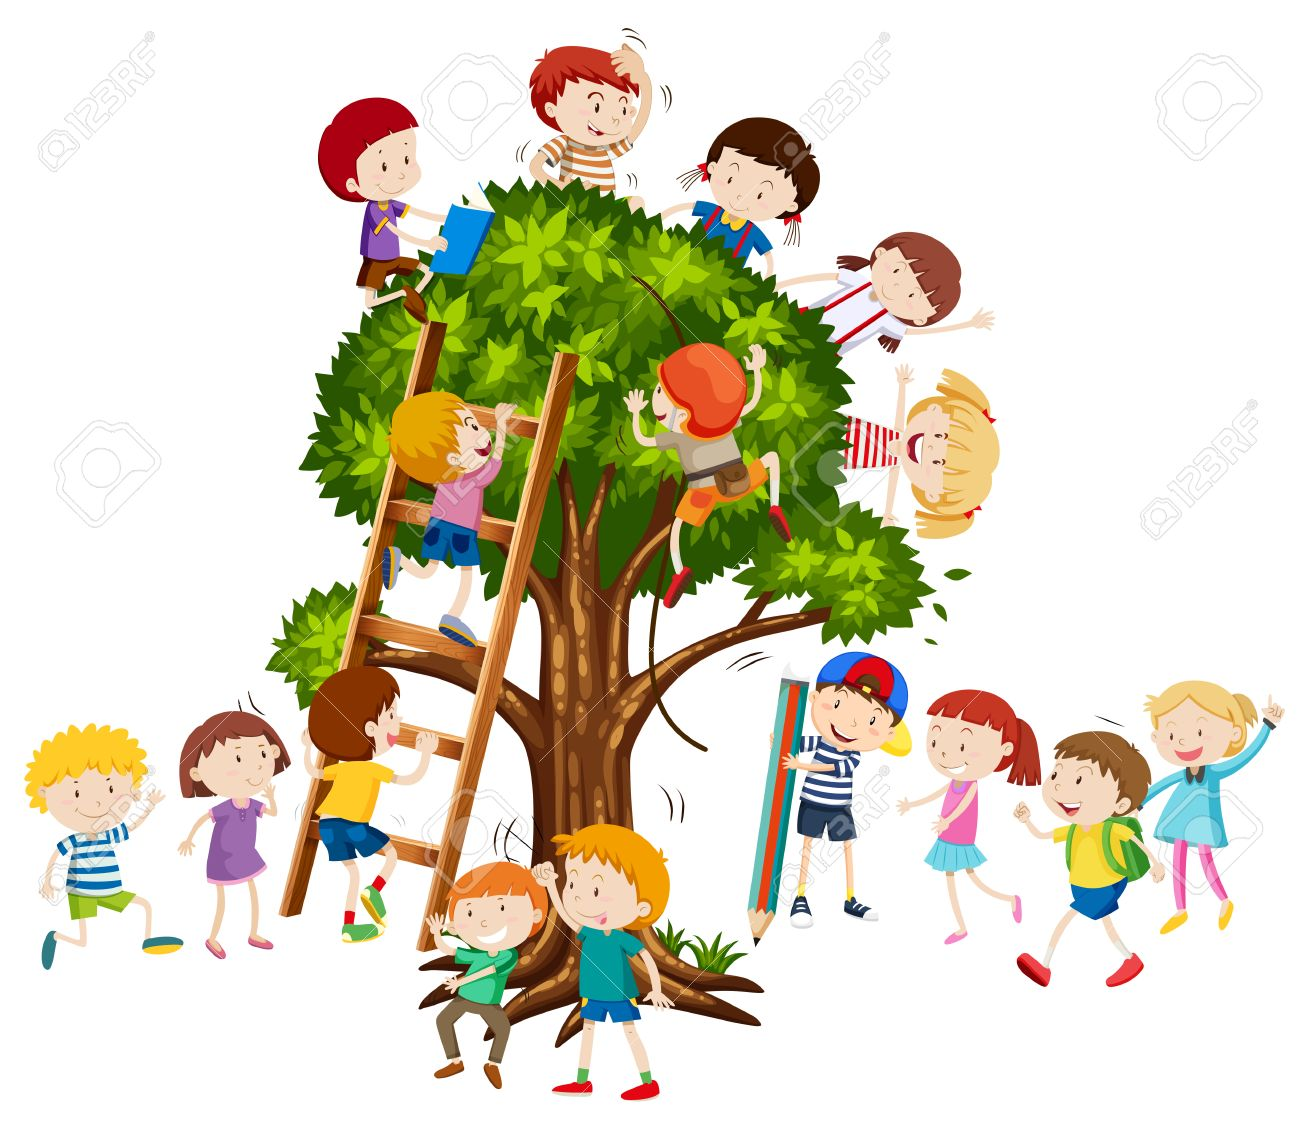 Children Climbing Up The Tree Illustration Royalty Free Cliparts